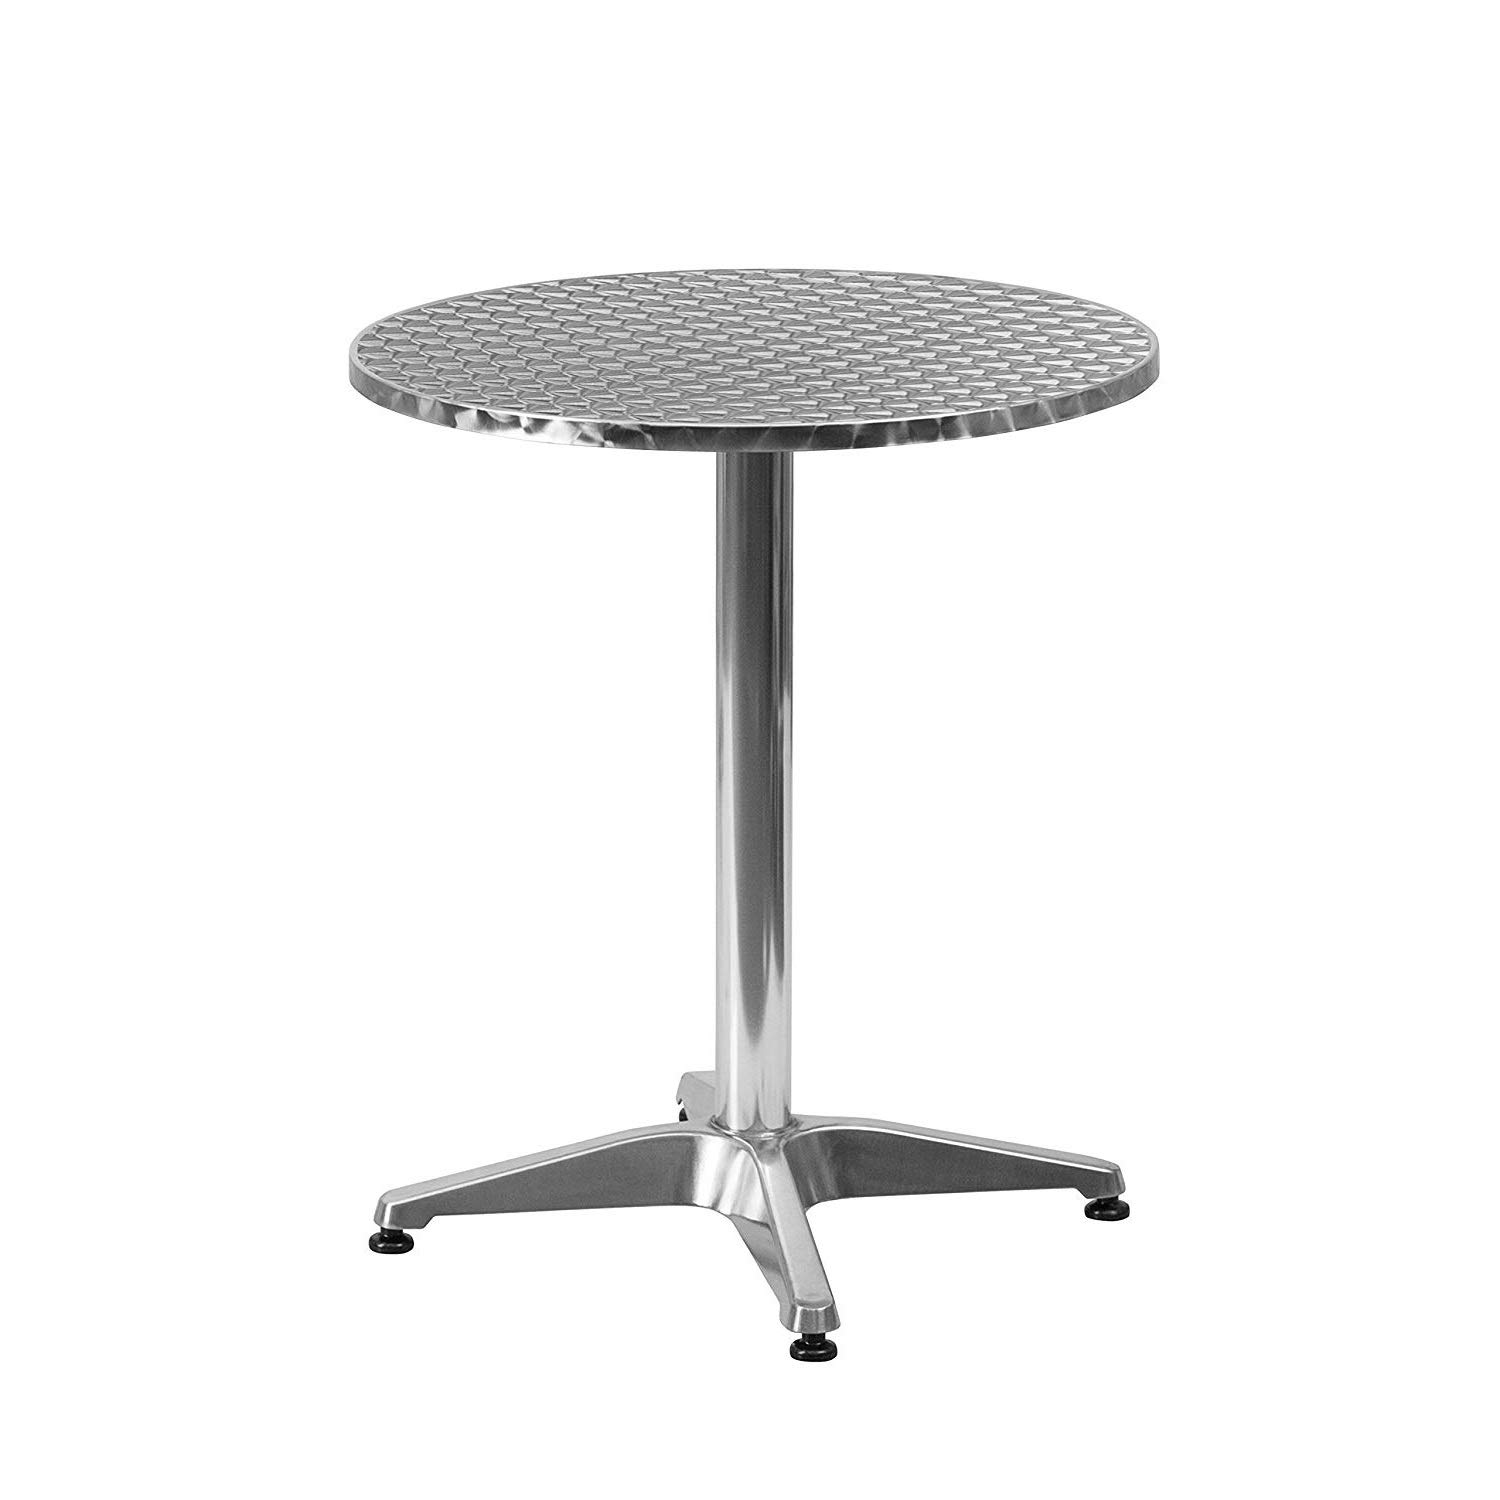 DK Furniture 23.5'' Round Aluminum Indoor-Outdoor Table with Base